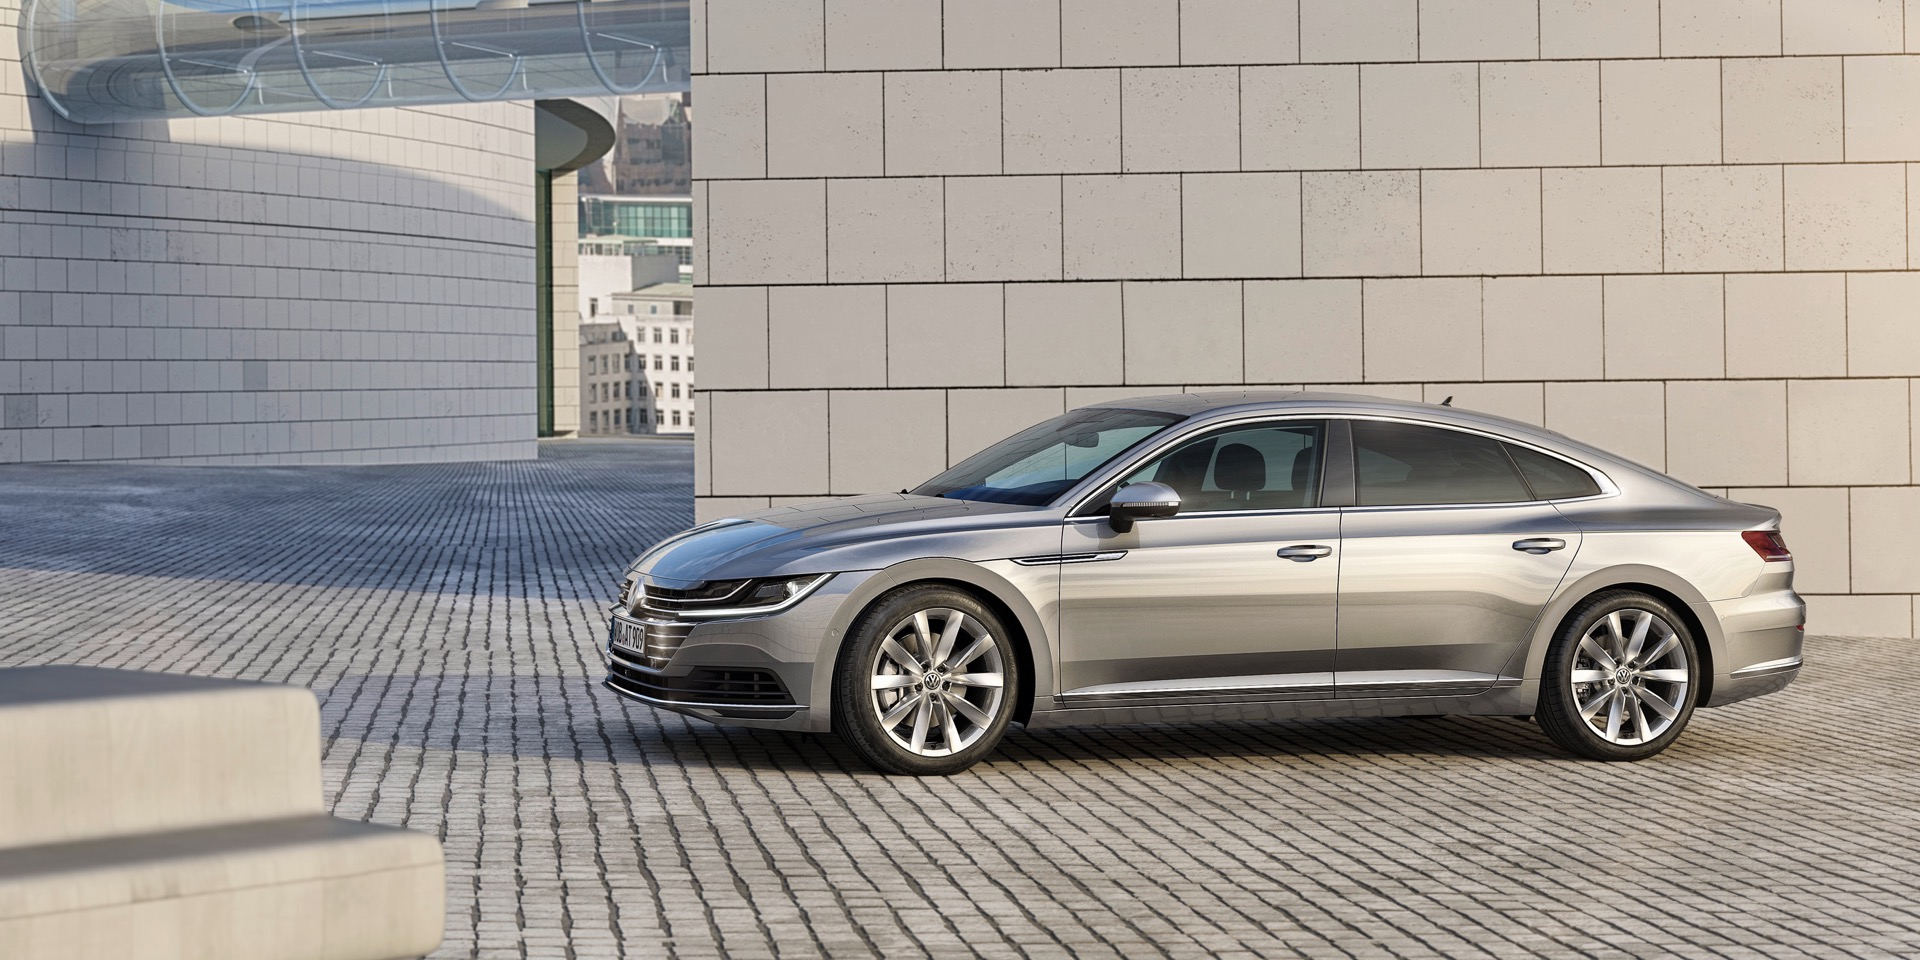 Volkswagen Arteon To Rival Bmw 6 Sereis Gran Coupe Aud A7